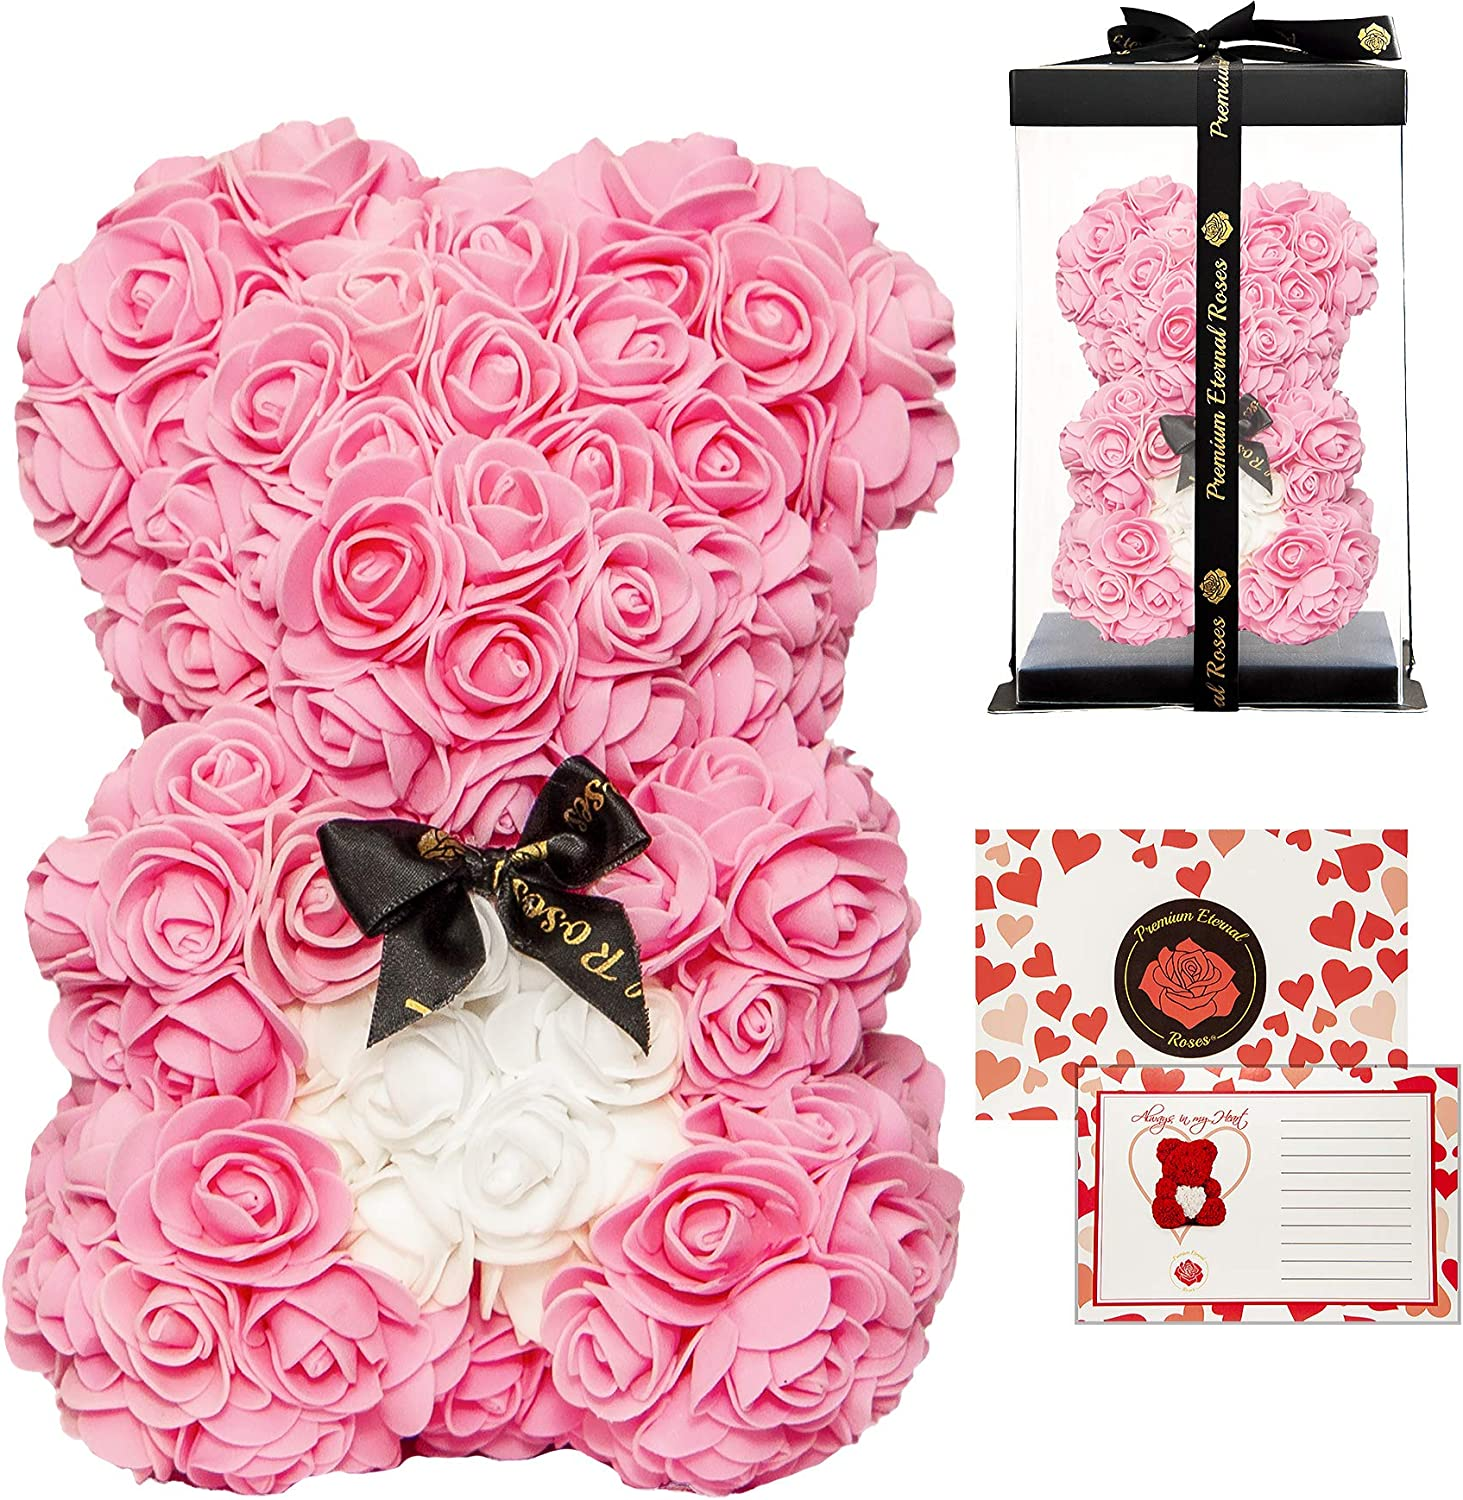 Clear Gift Box Rose Bear 16 Inches and 10 Inches Flower Bear Perfect for Birthdays Valentines Premium Eternal Rose Rose Teddy Bear Gray with Red Heart, 16 Inch